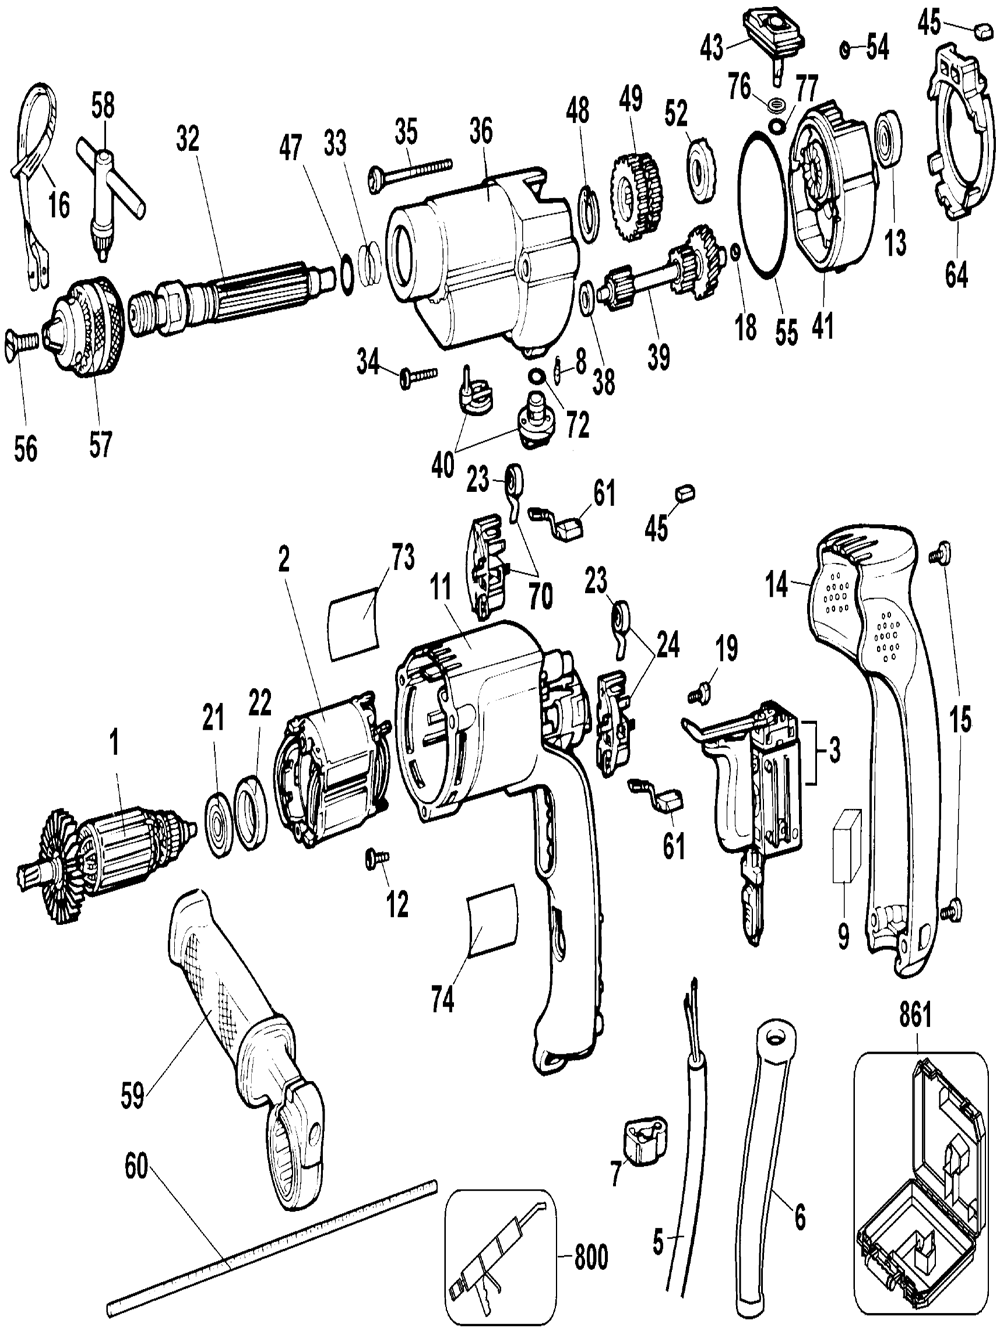 dewalt dw515 wiring diagram   27 wiring diagram images